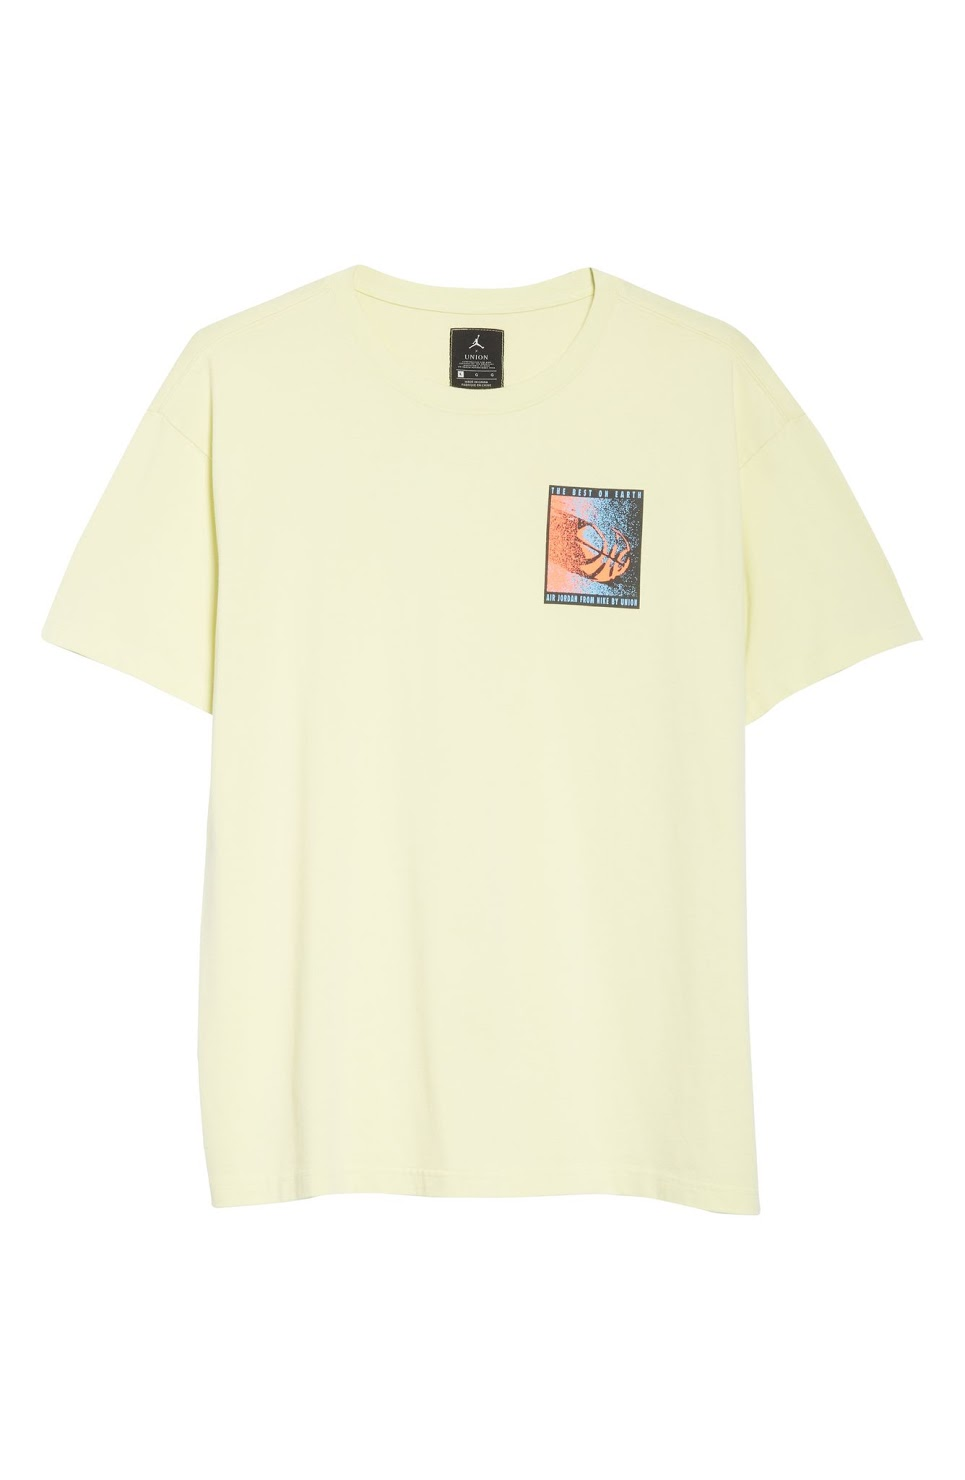 Jordan_Short Sleeve T-Shirt in Pale Yellow_$50.jpeg